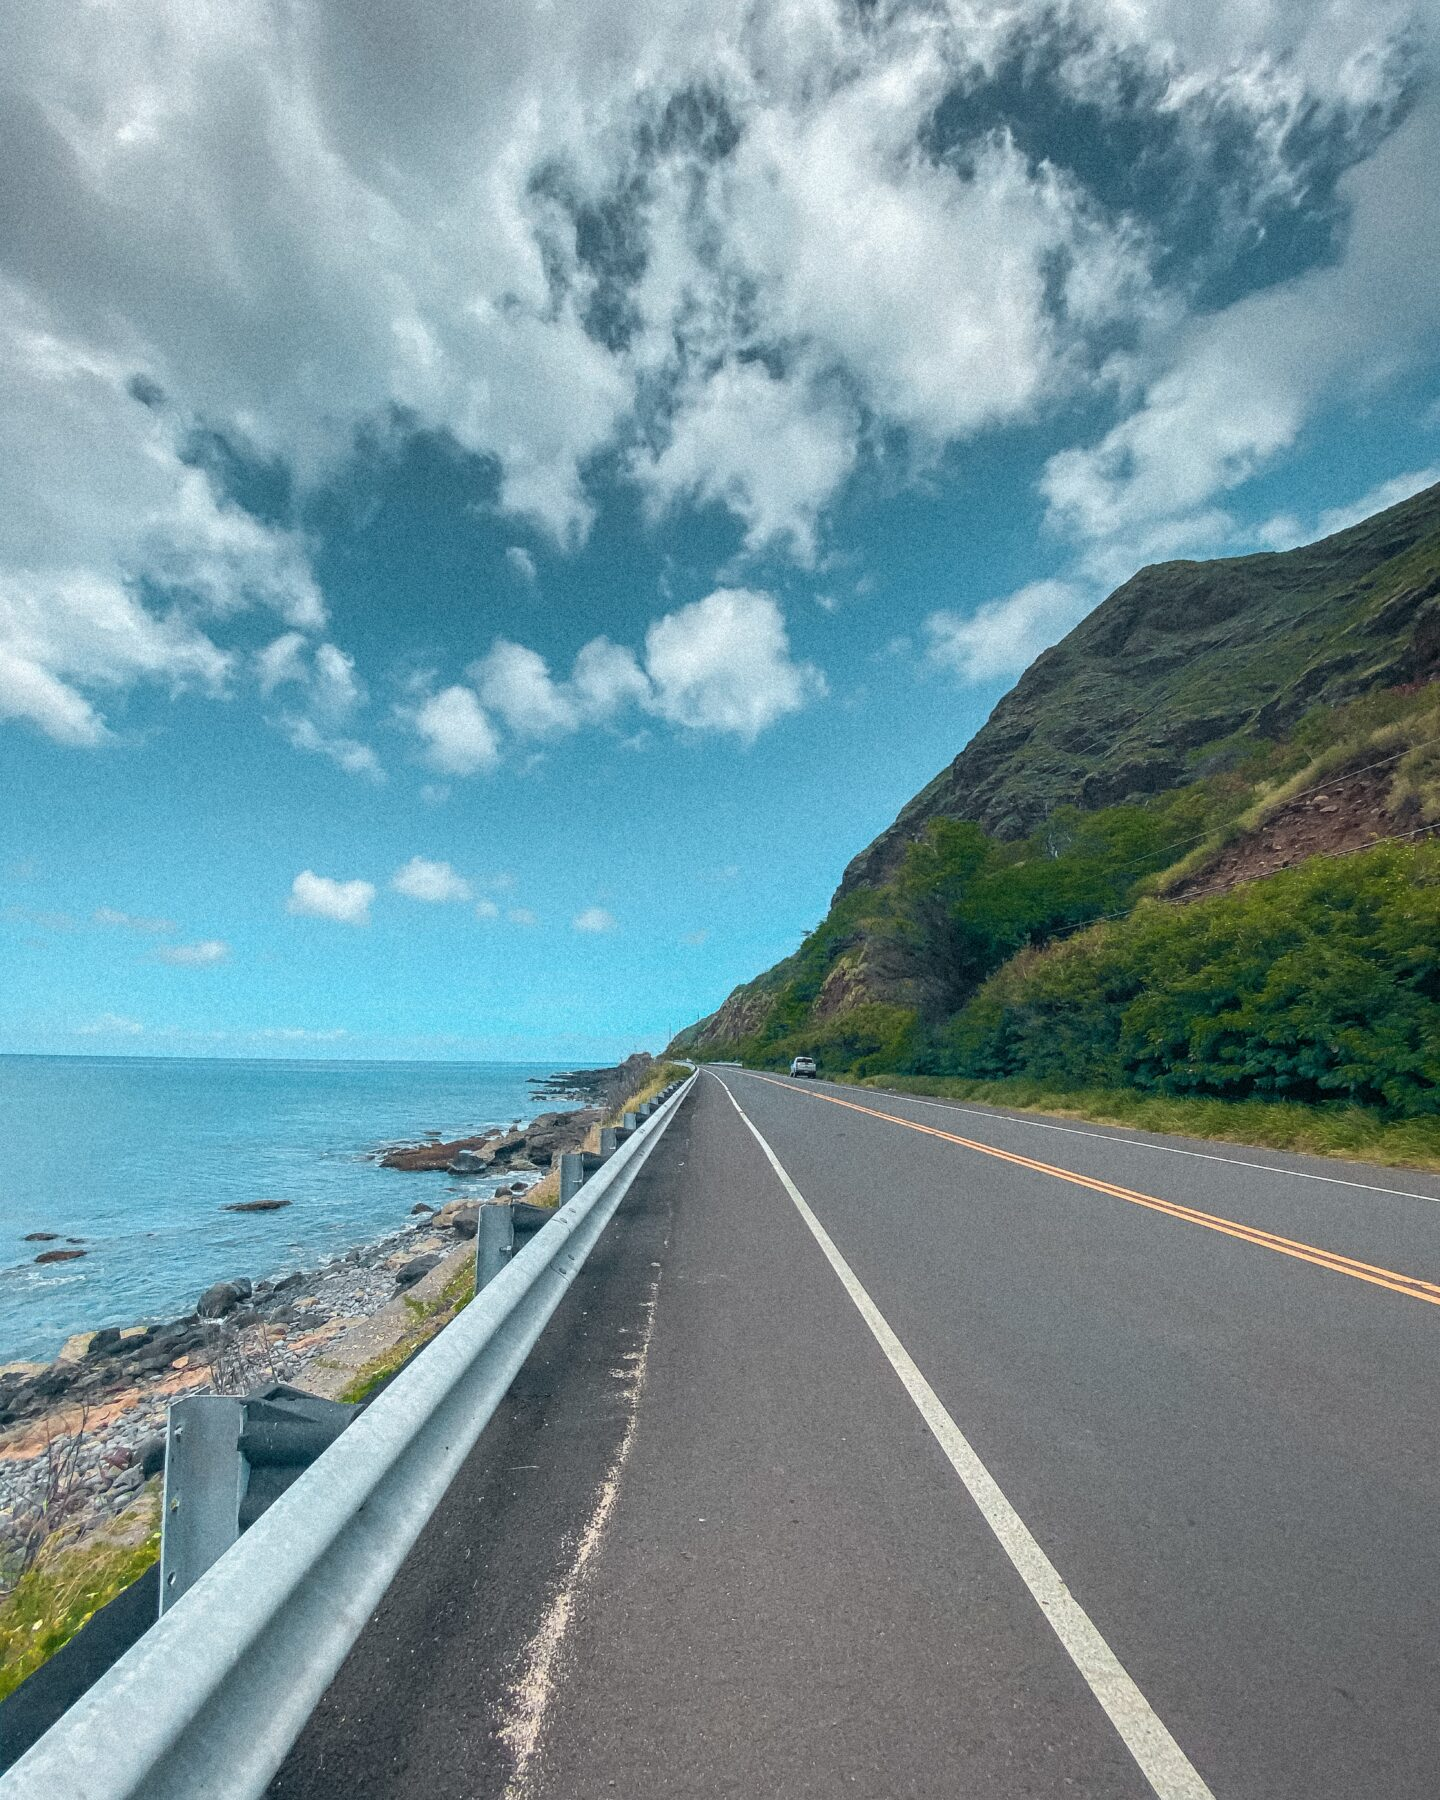 Road with sky and sea